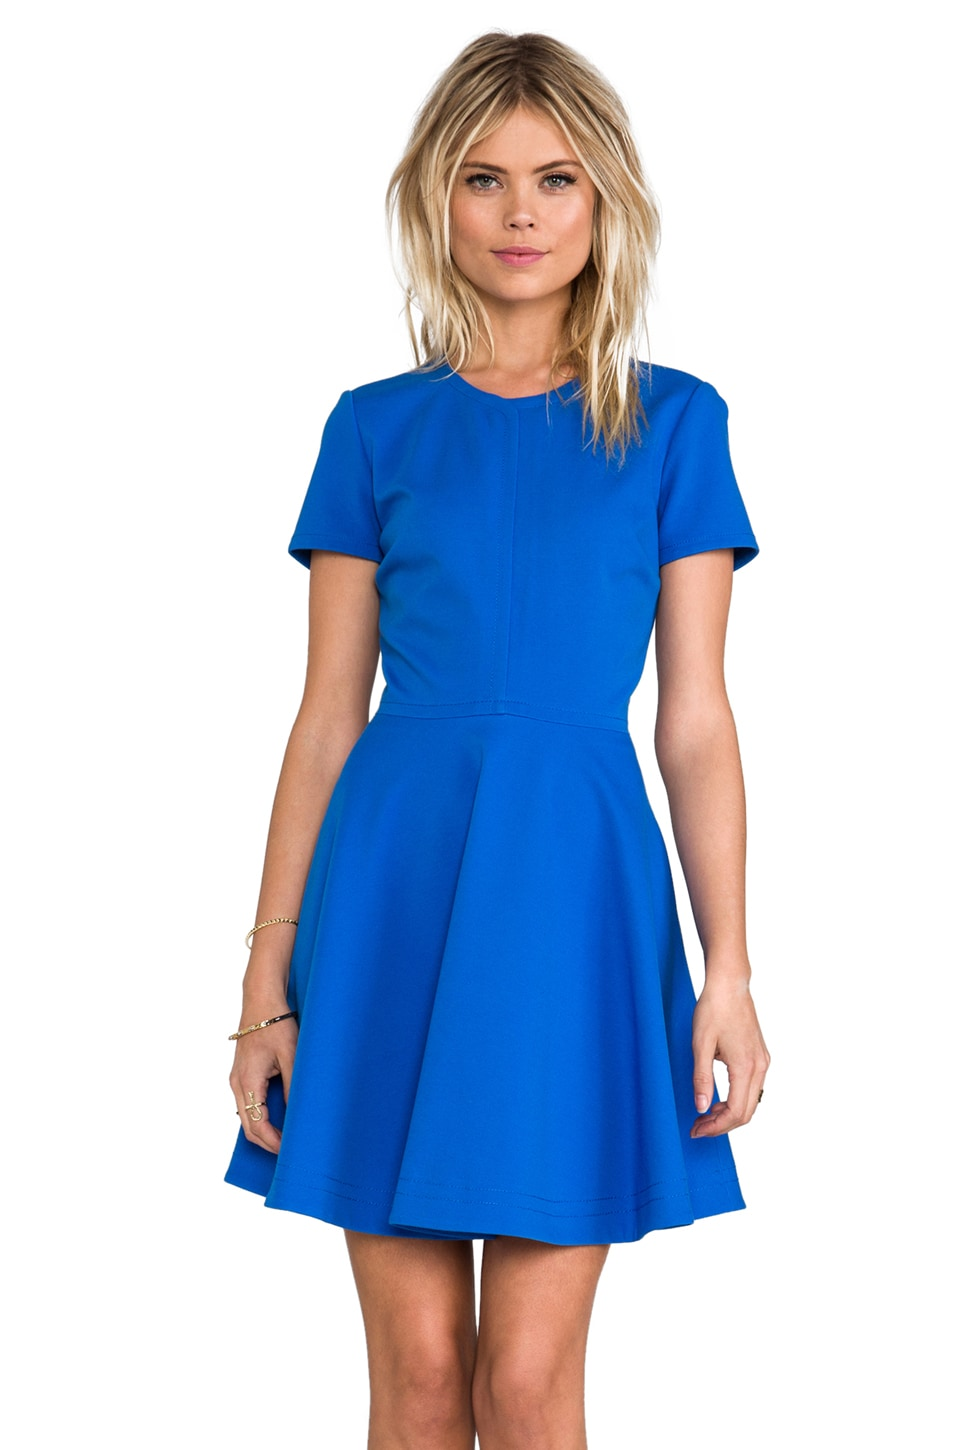 Diane von Furstenberg Ivana Dress in Blue Iris